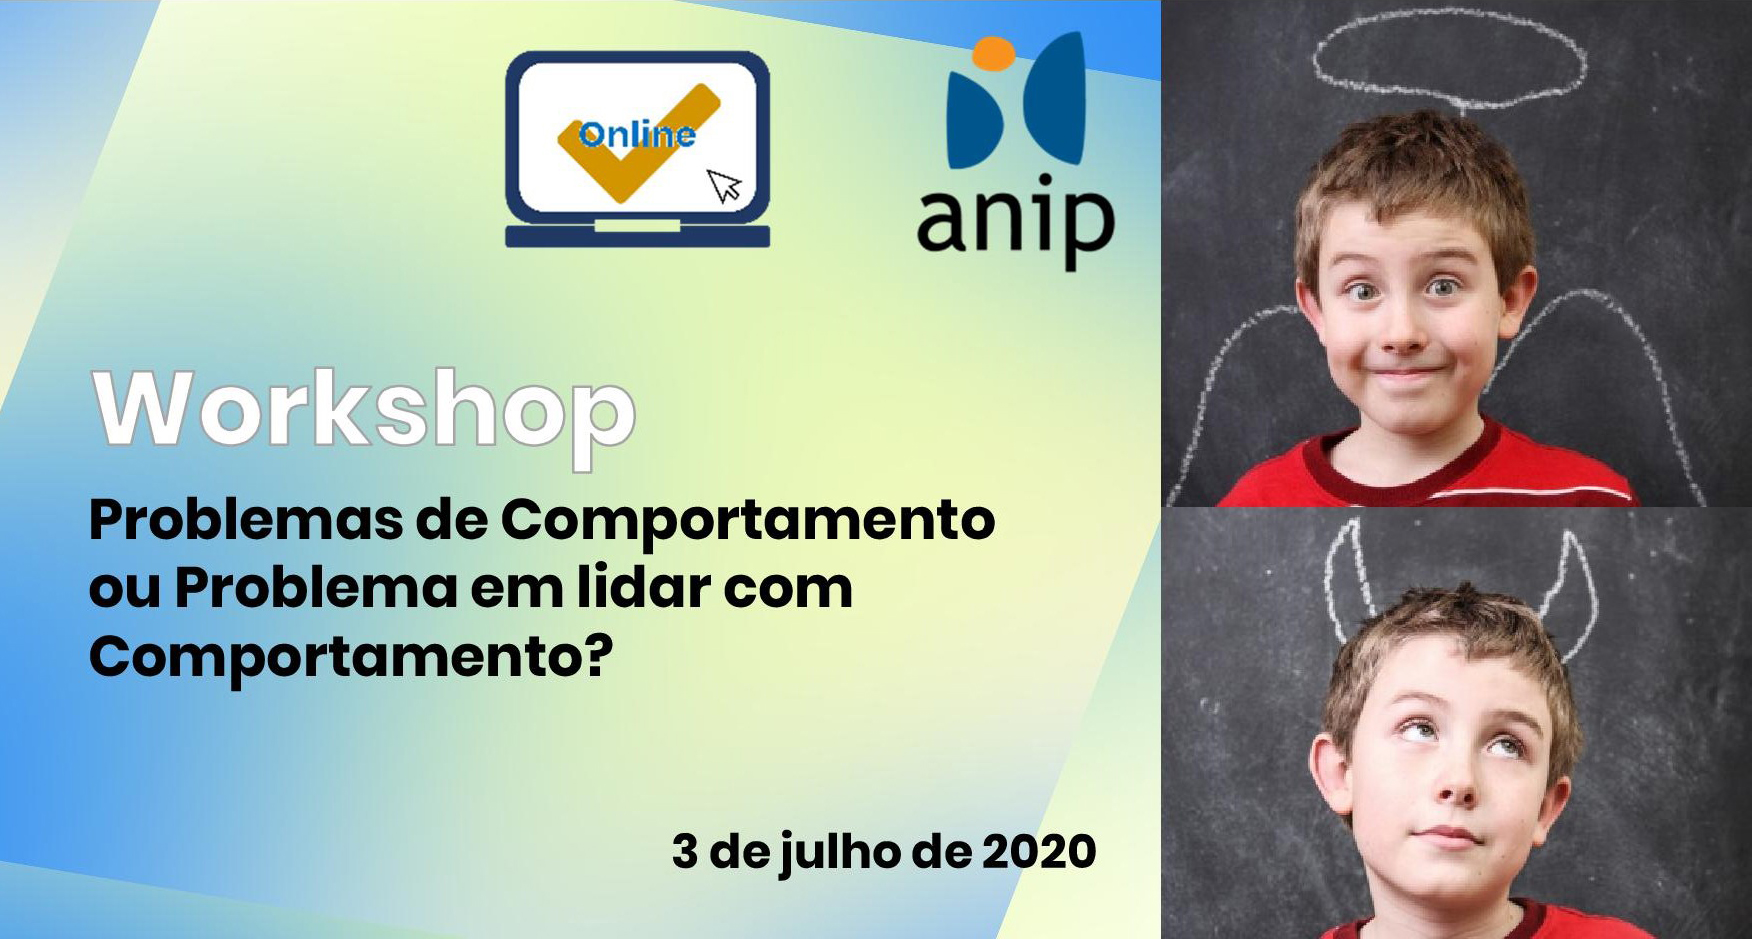 Workshop Problemas de Comportamento (online)